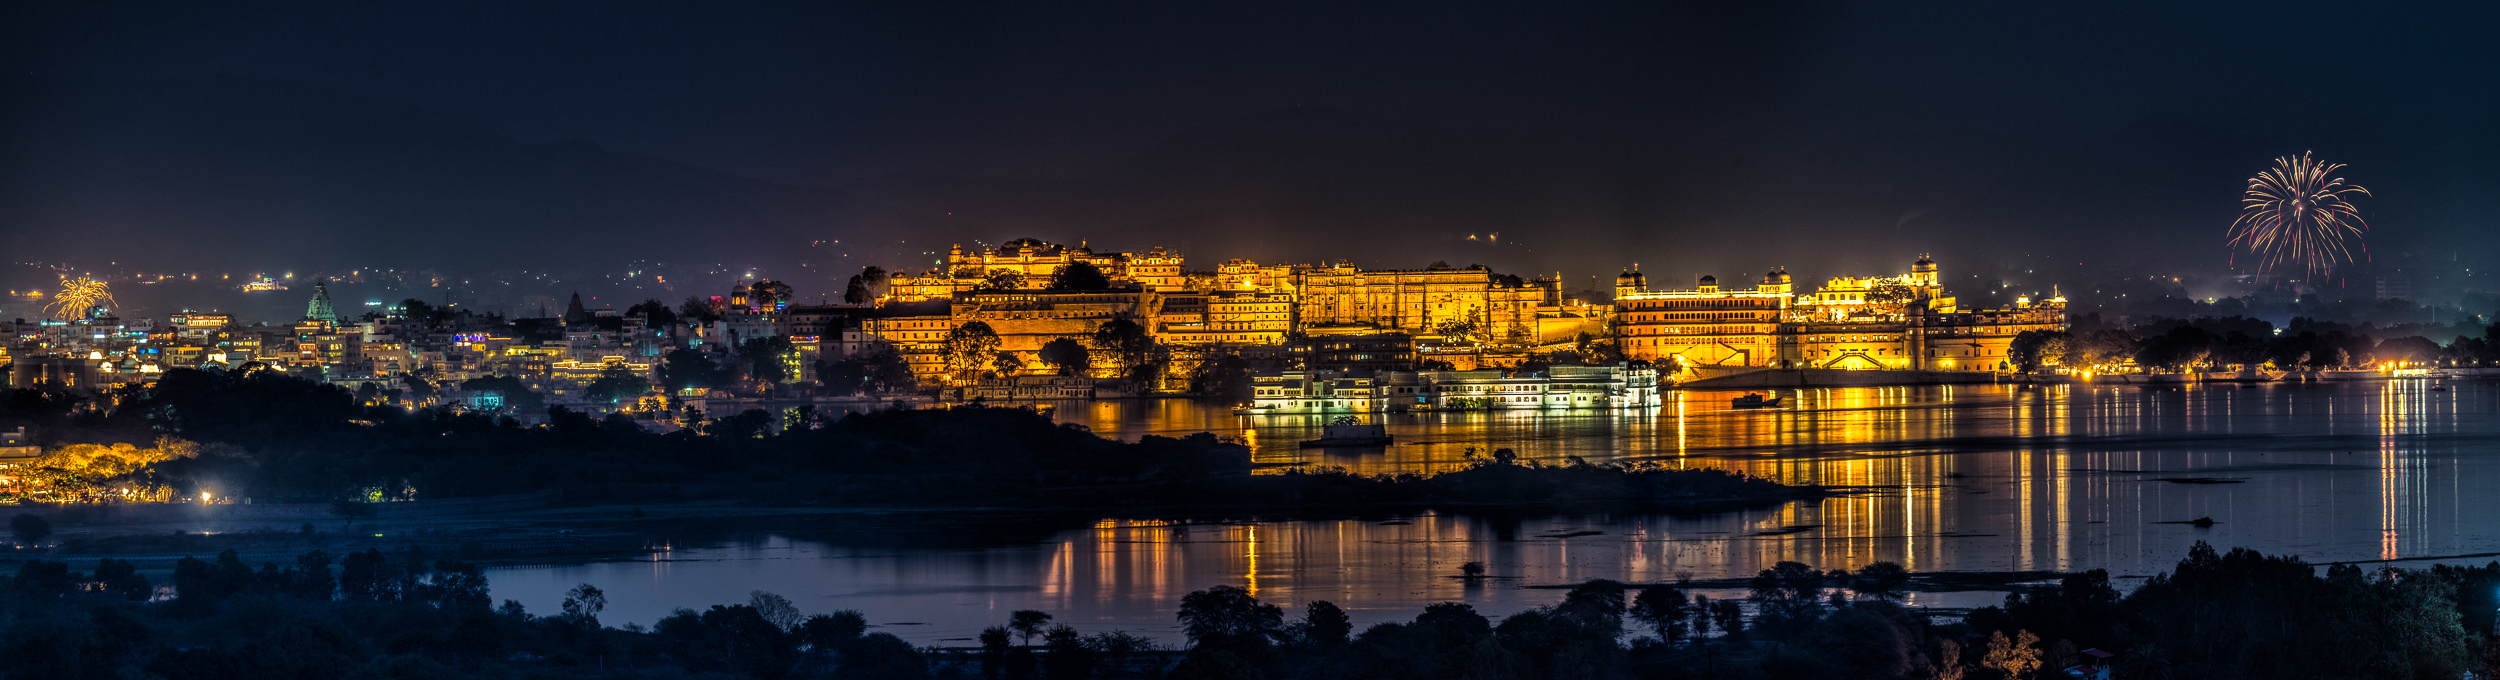 [2015 01 29] India 2015 Udaipur (NIKON D800) 6031 3 pano B-Edit.jpg